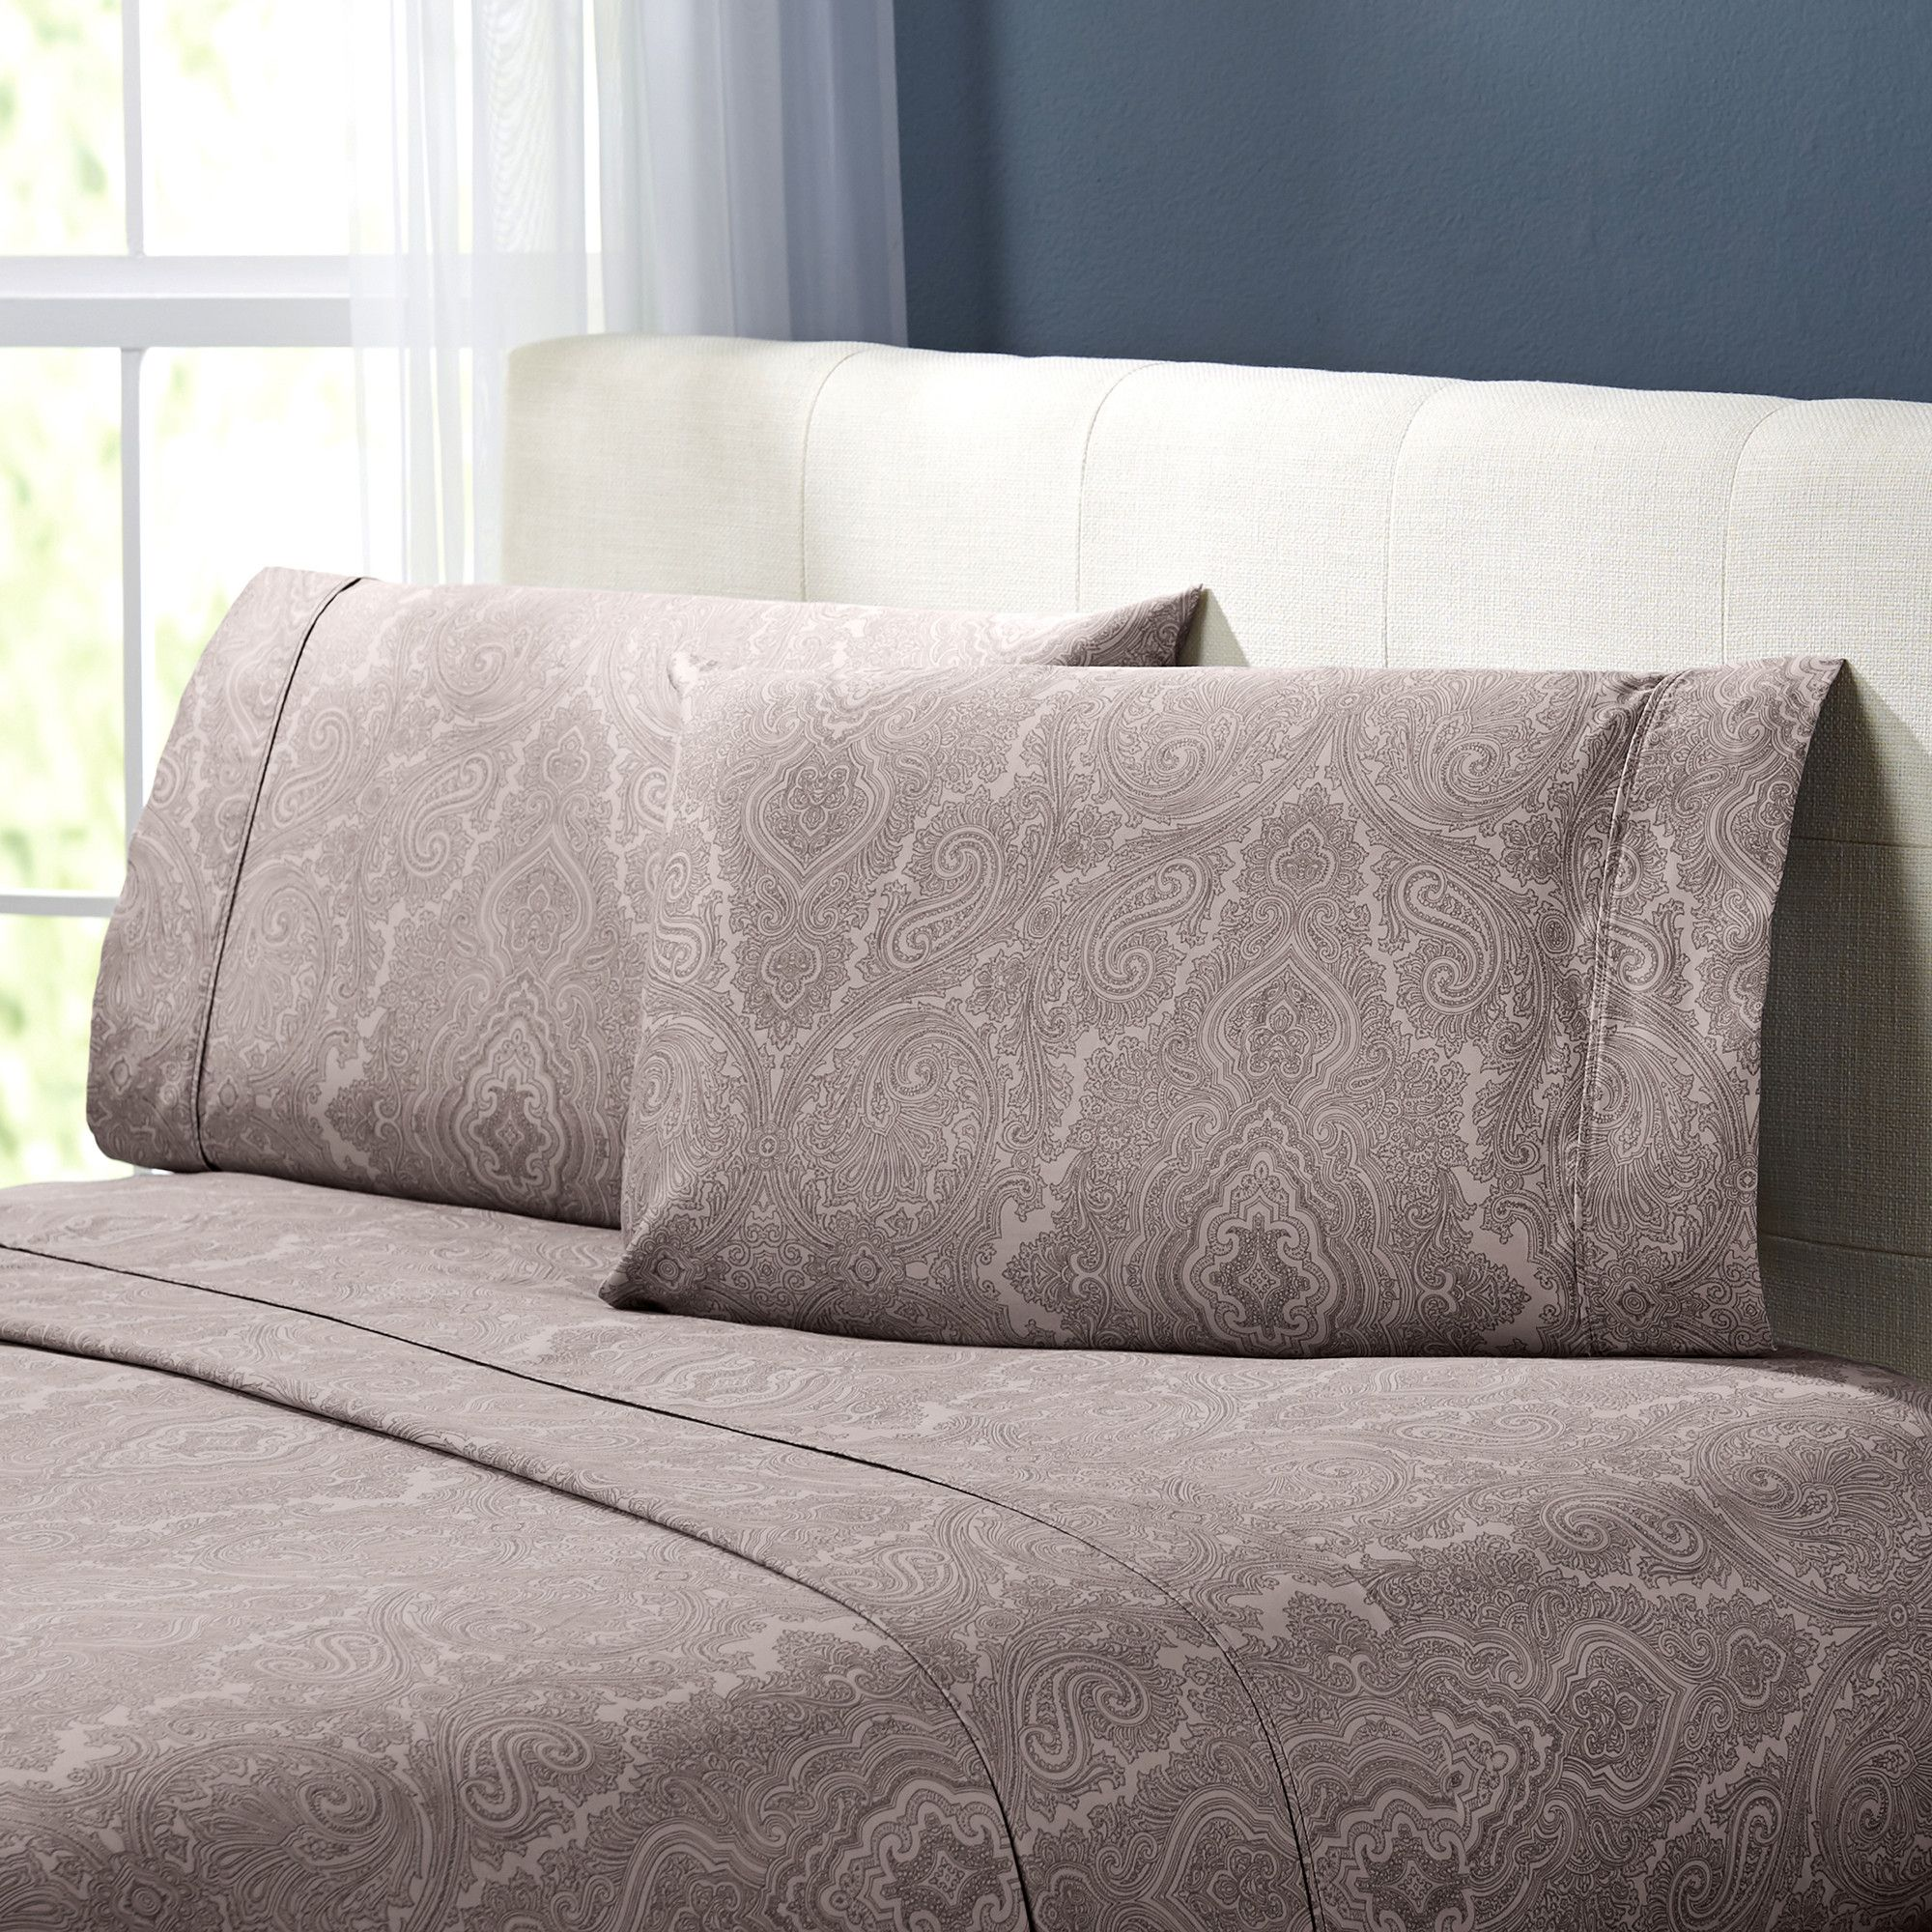 Paisley thread count cotton sheet set products pinterest